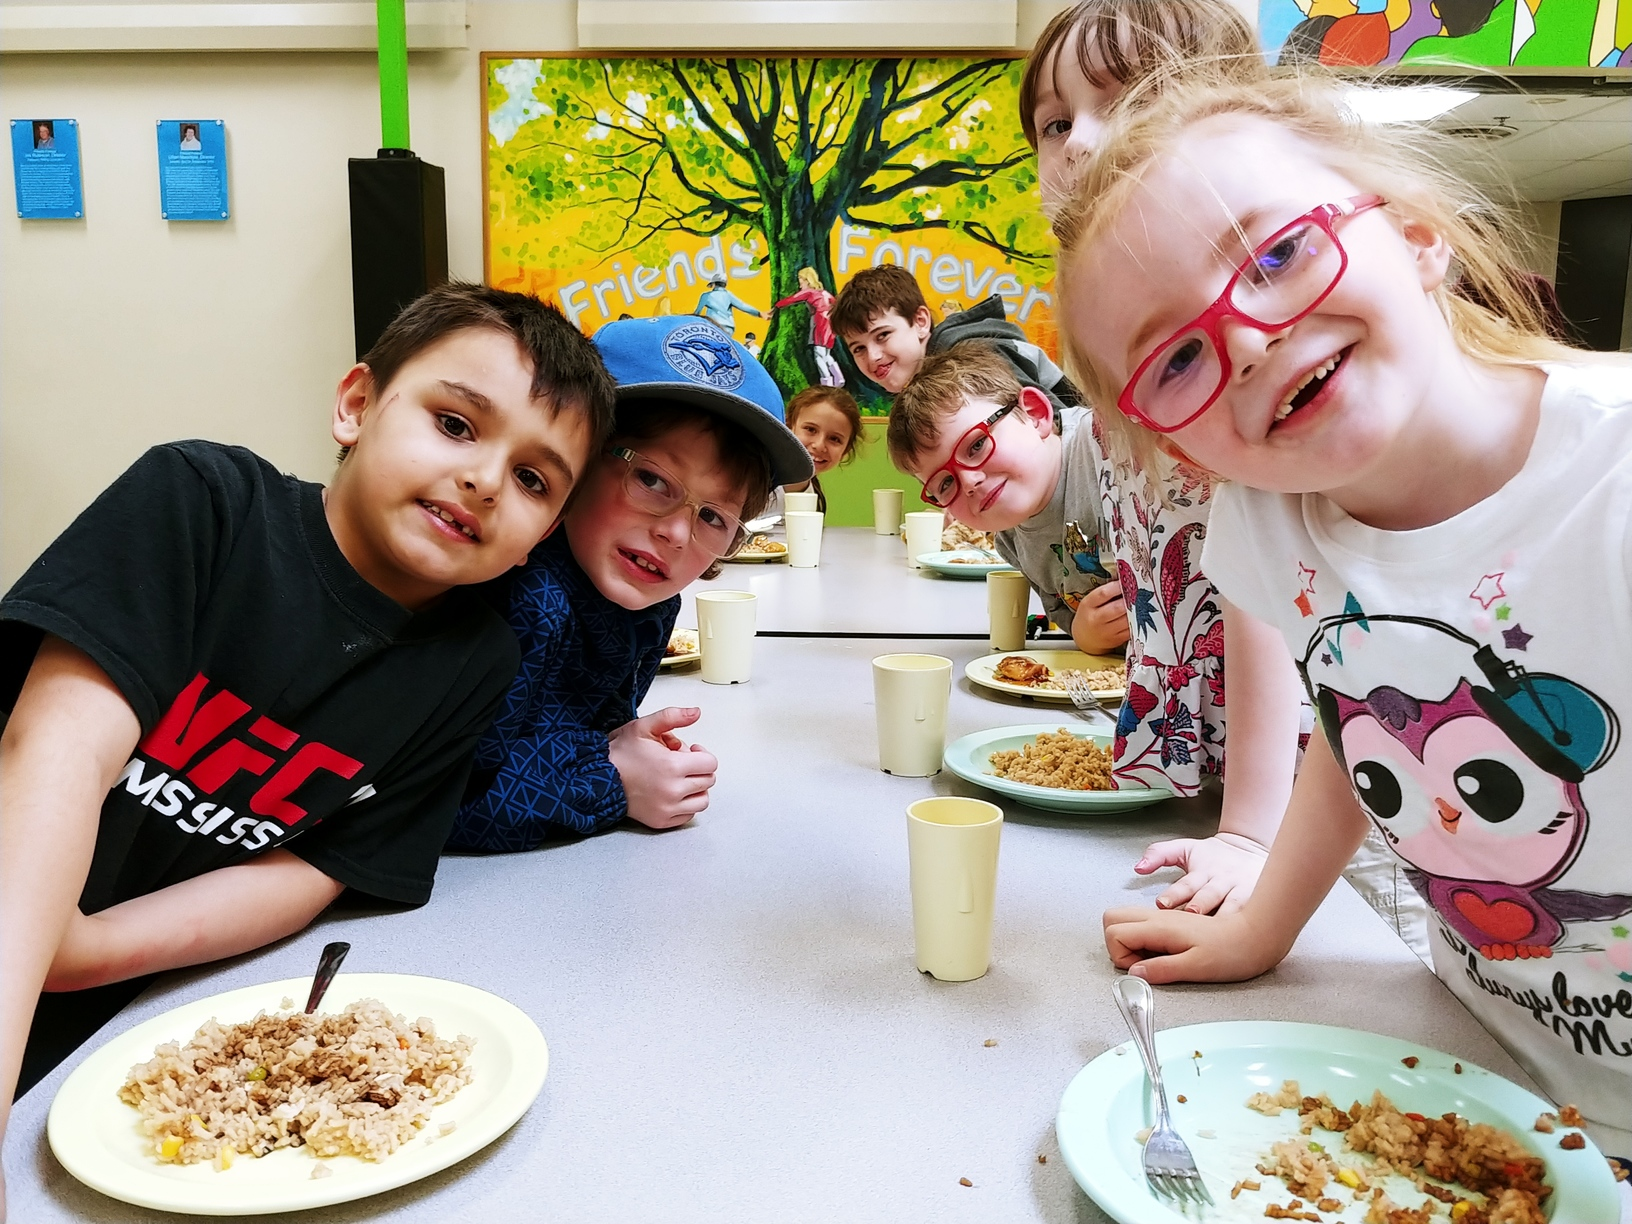 Dinner program ensures healthy, affordable meals for kids: Boys and Girls Clubs